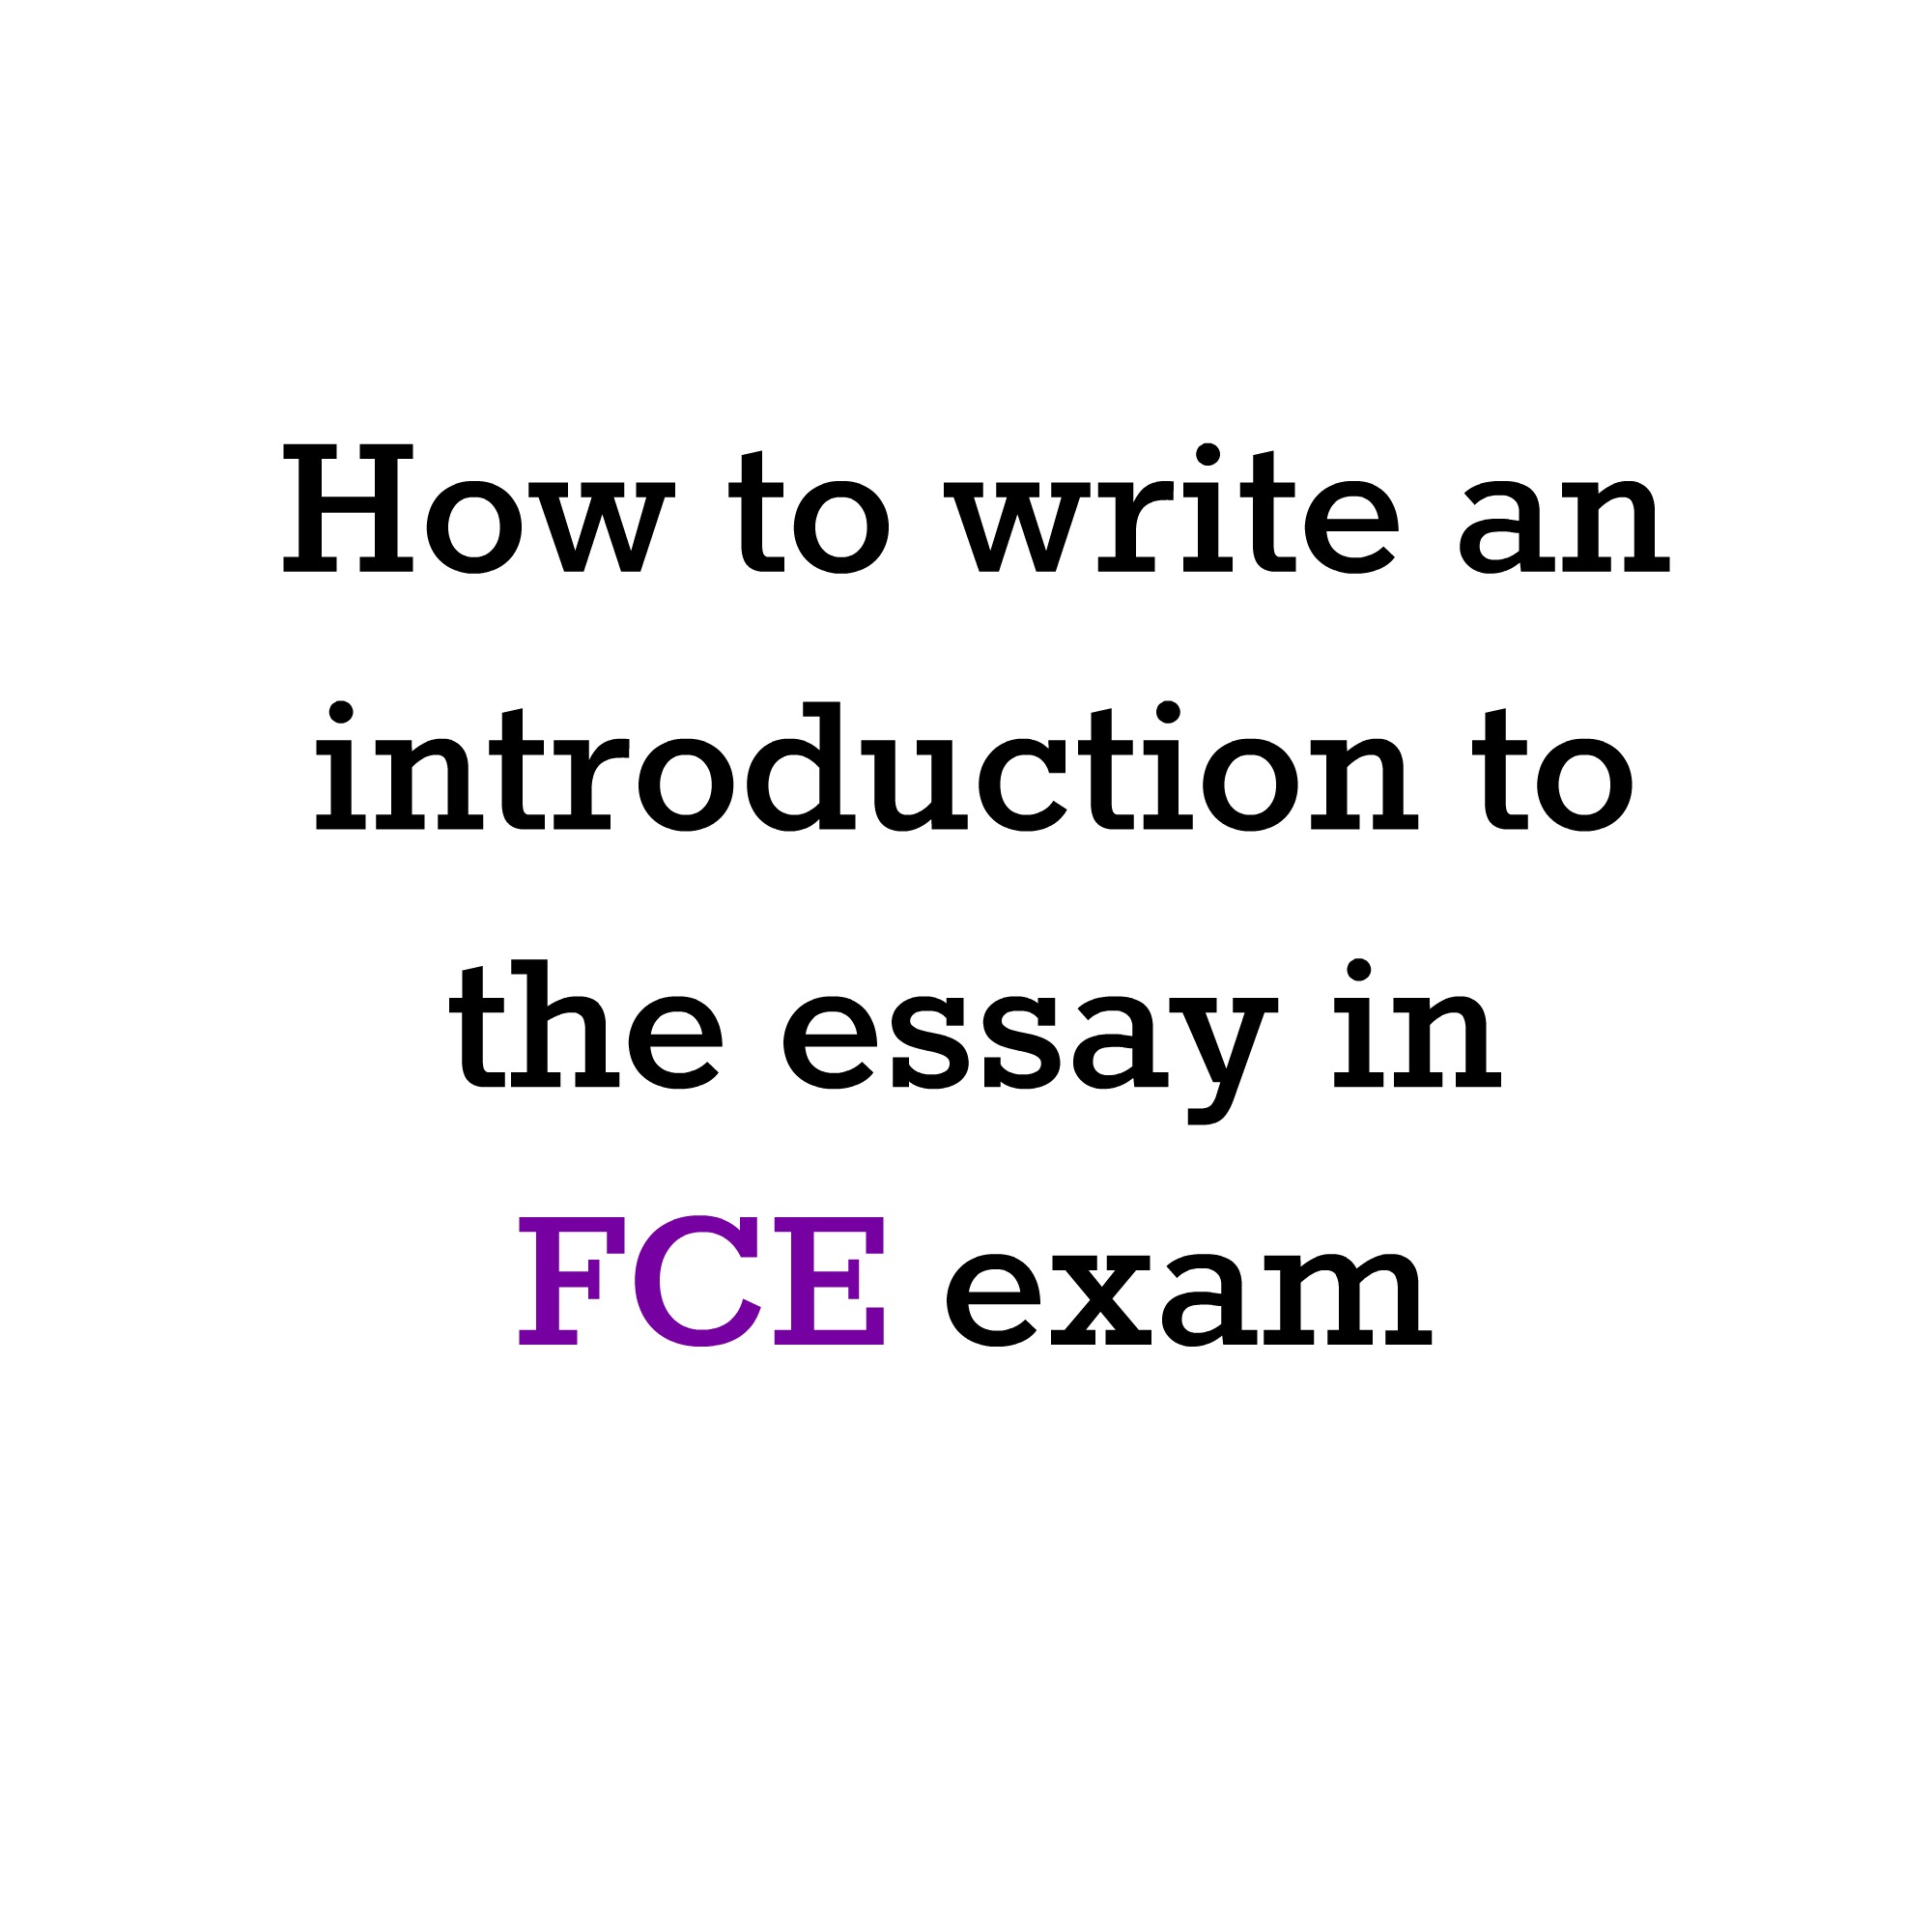 help on writing an introduction for an essay